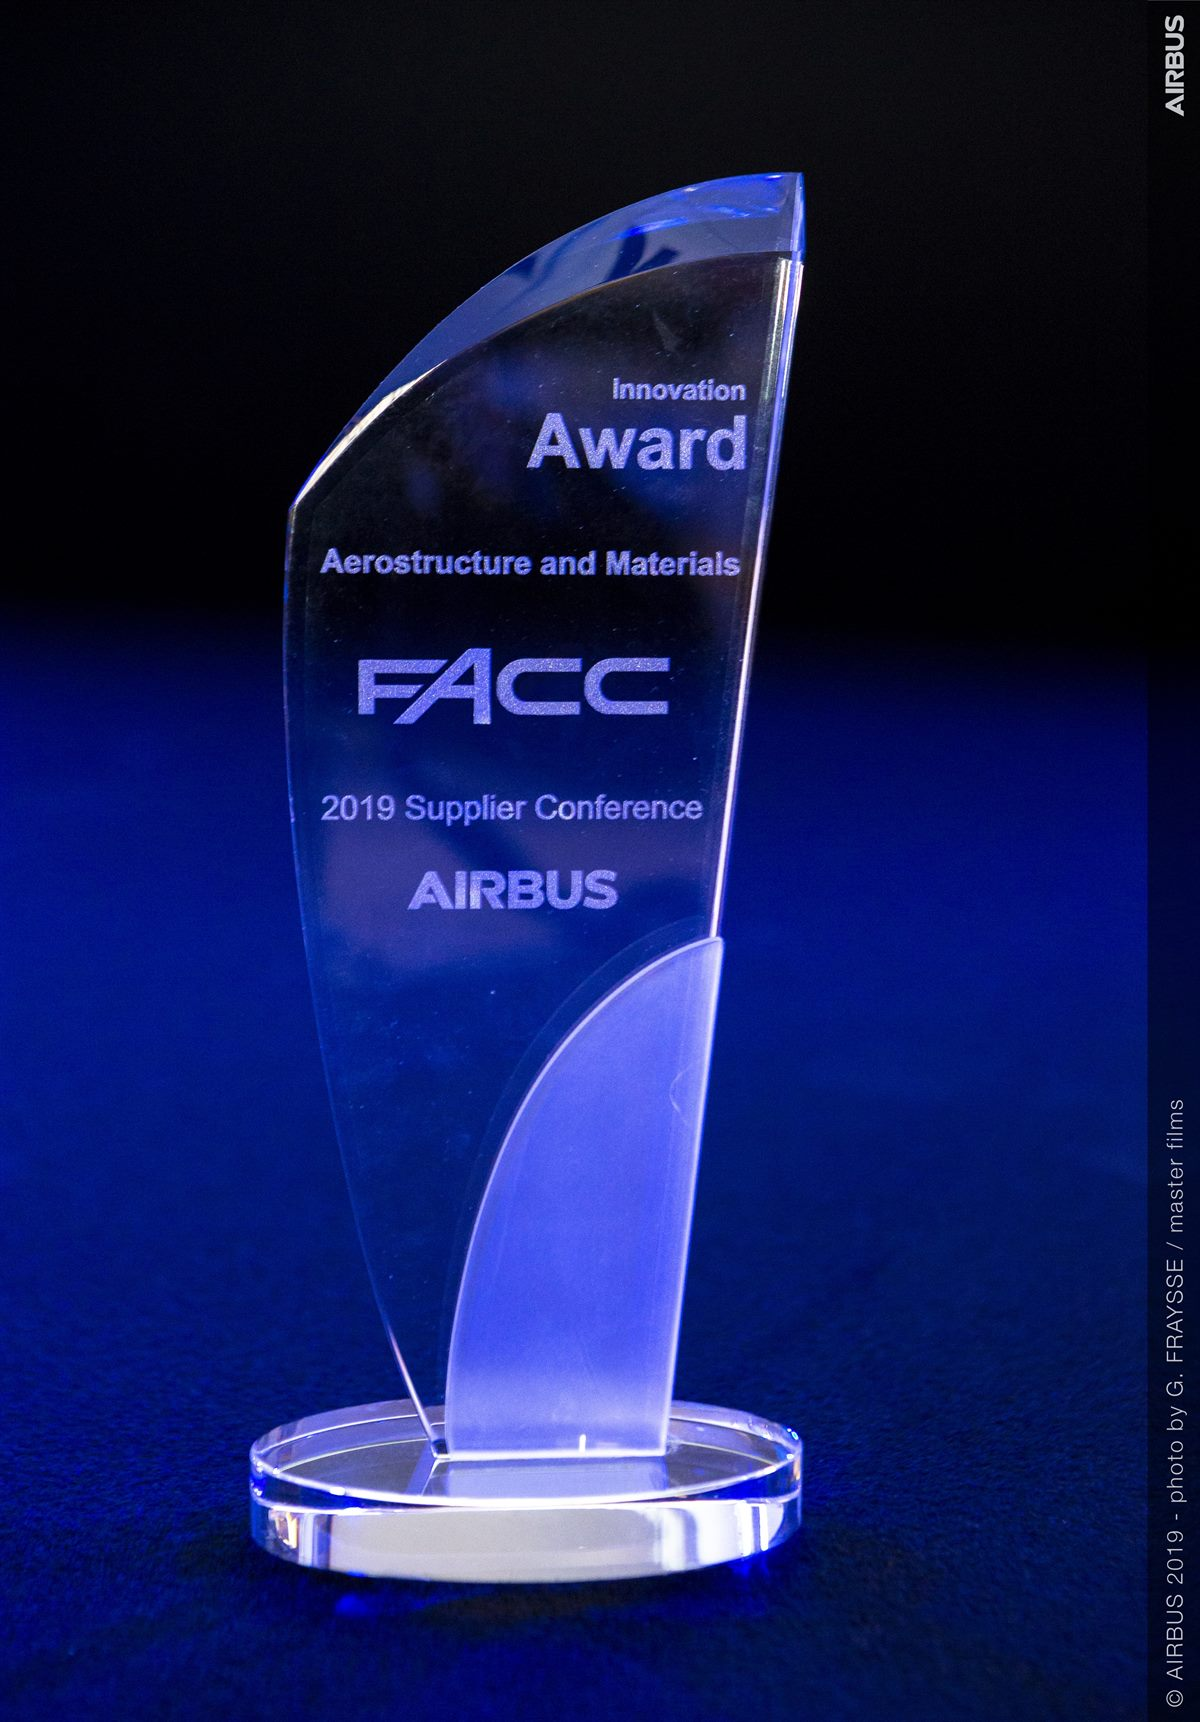 Airbus Innovation Award